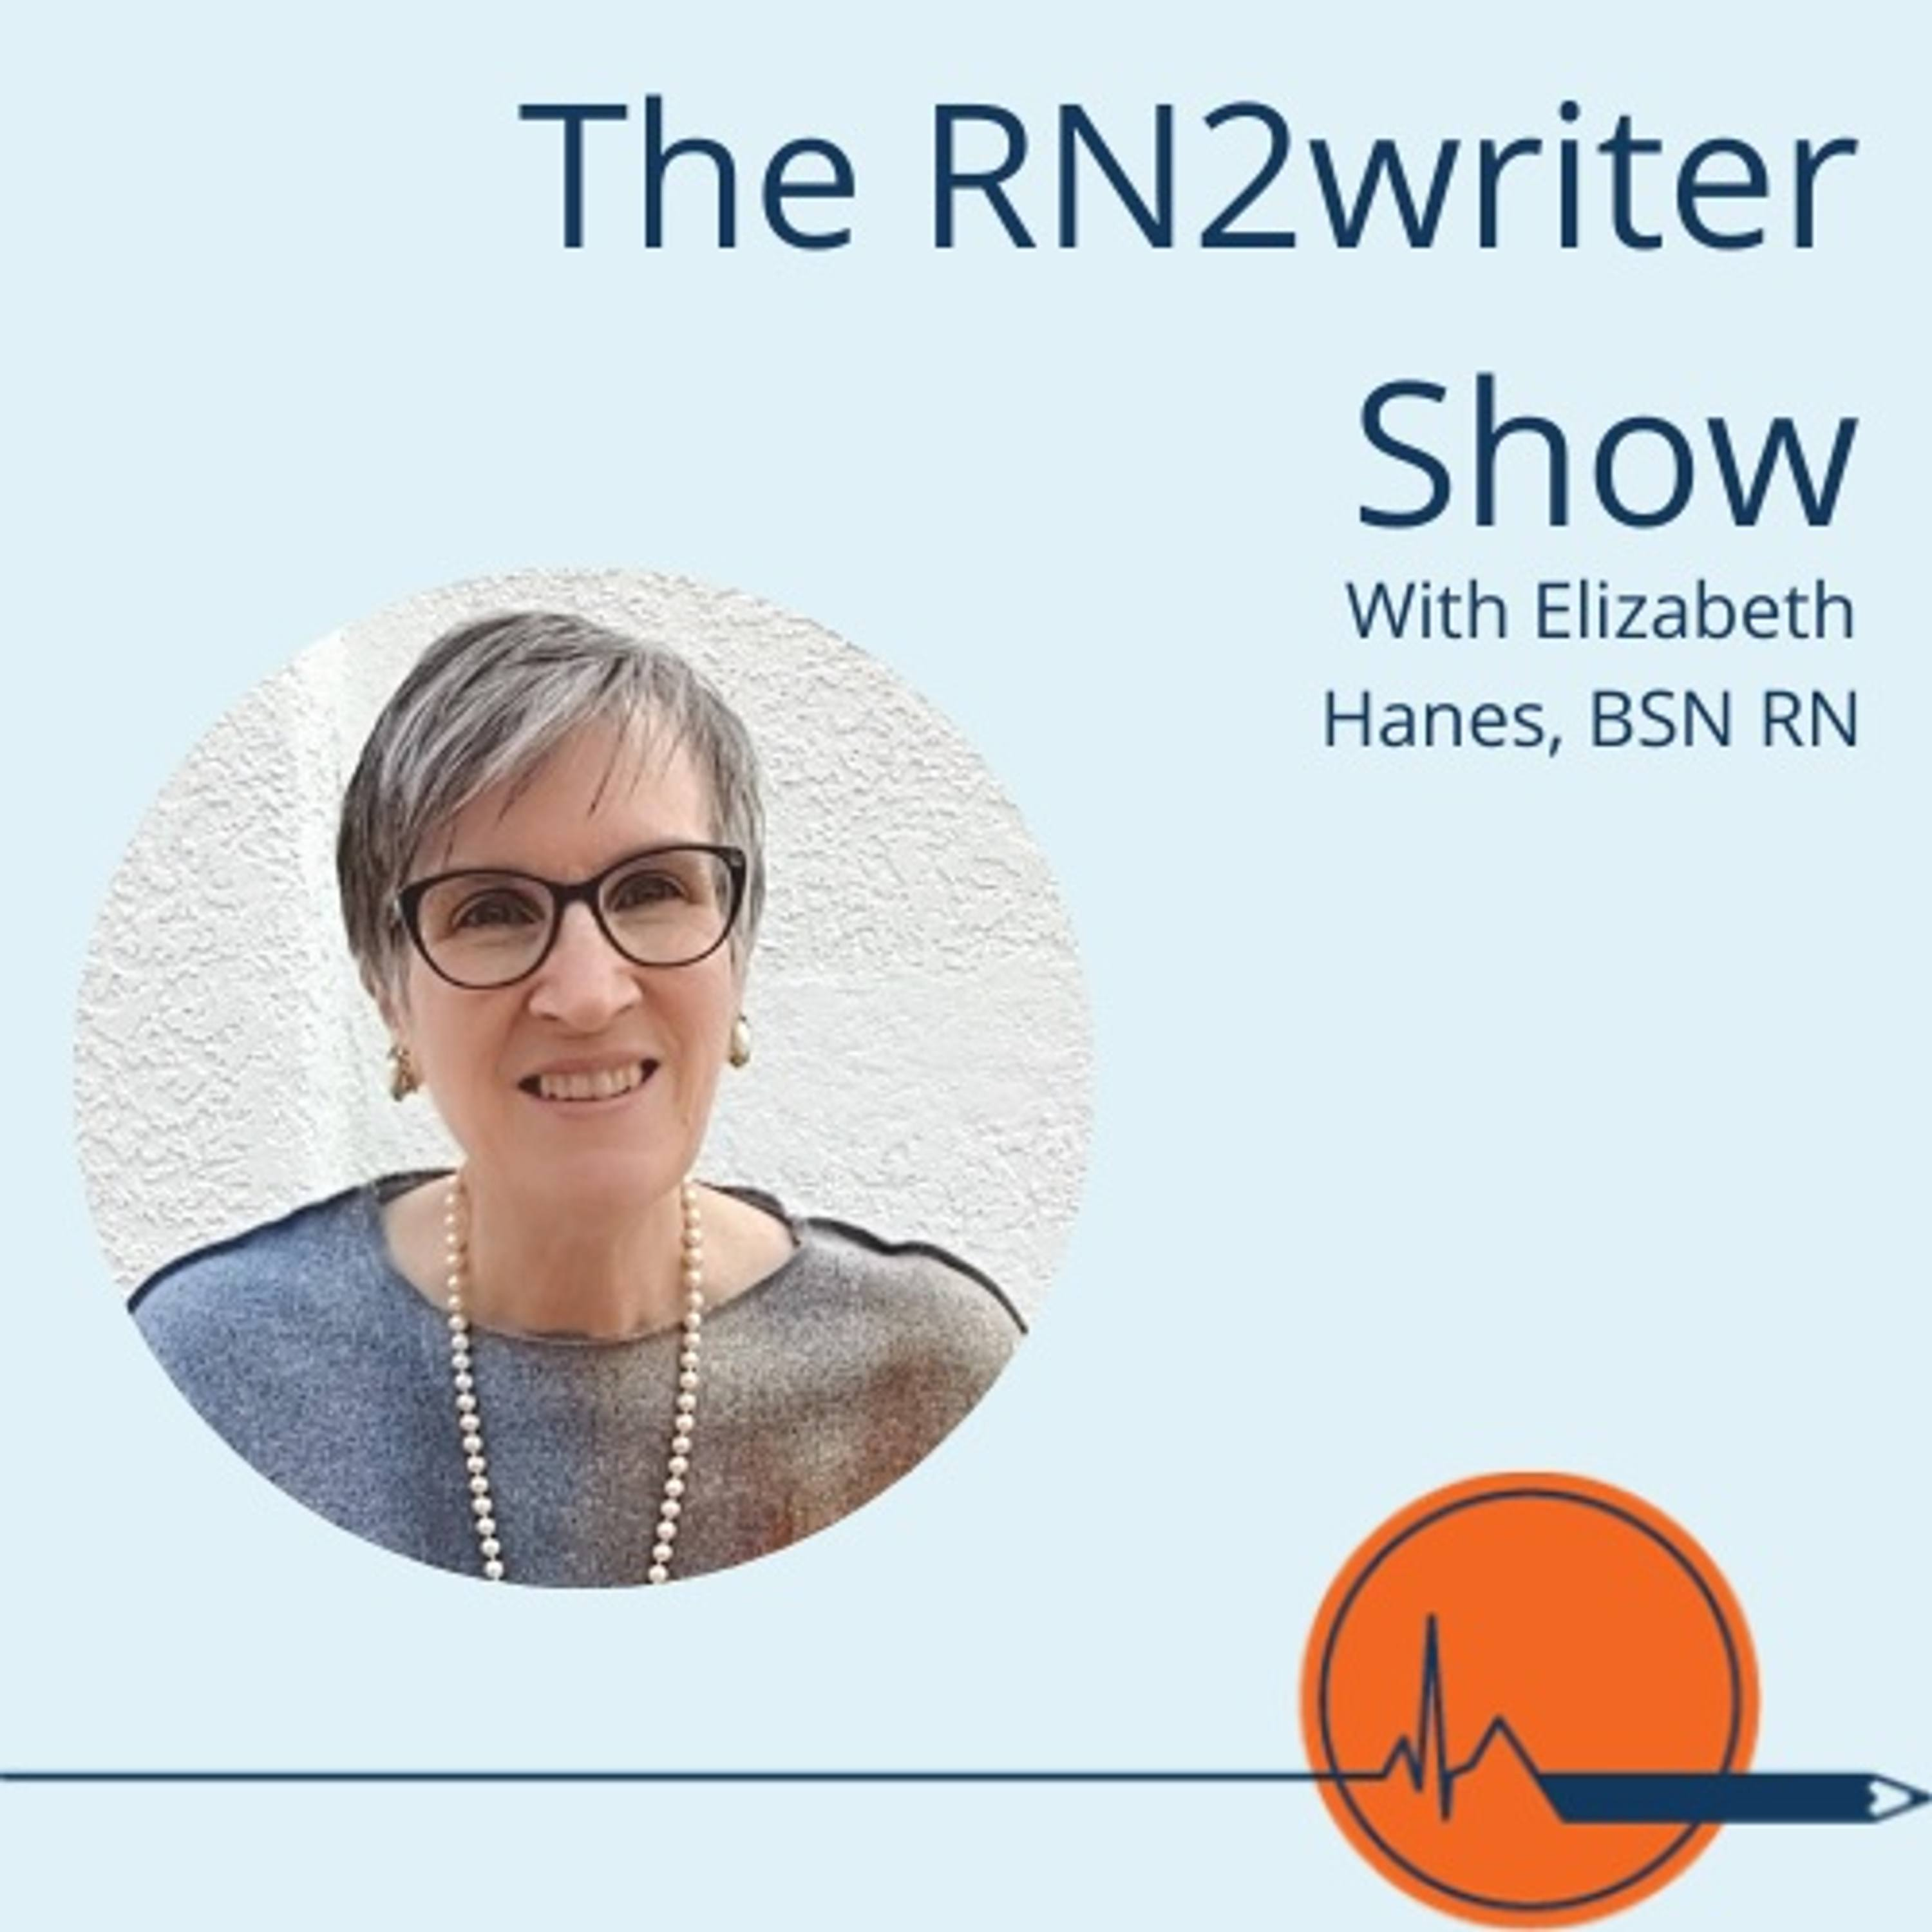 The RN2writer Show